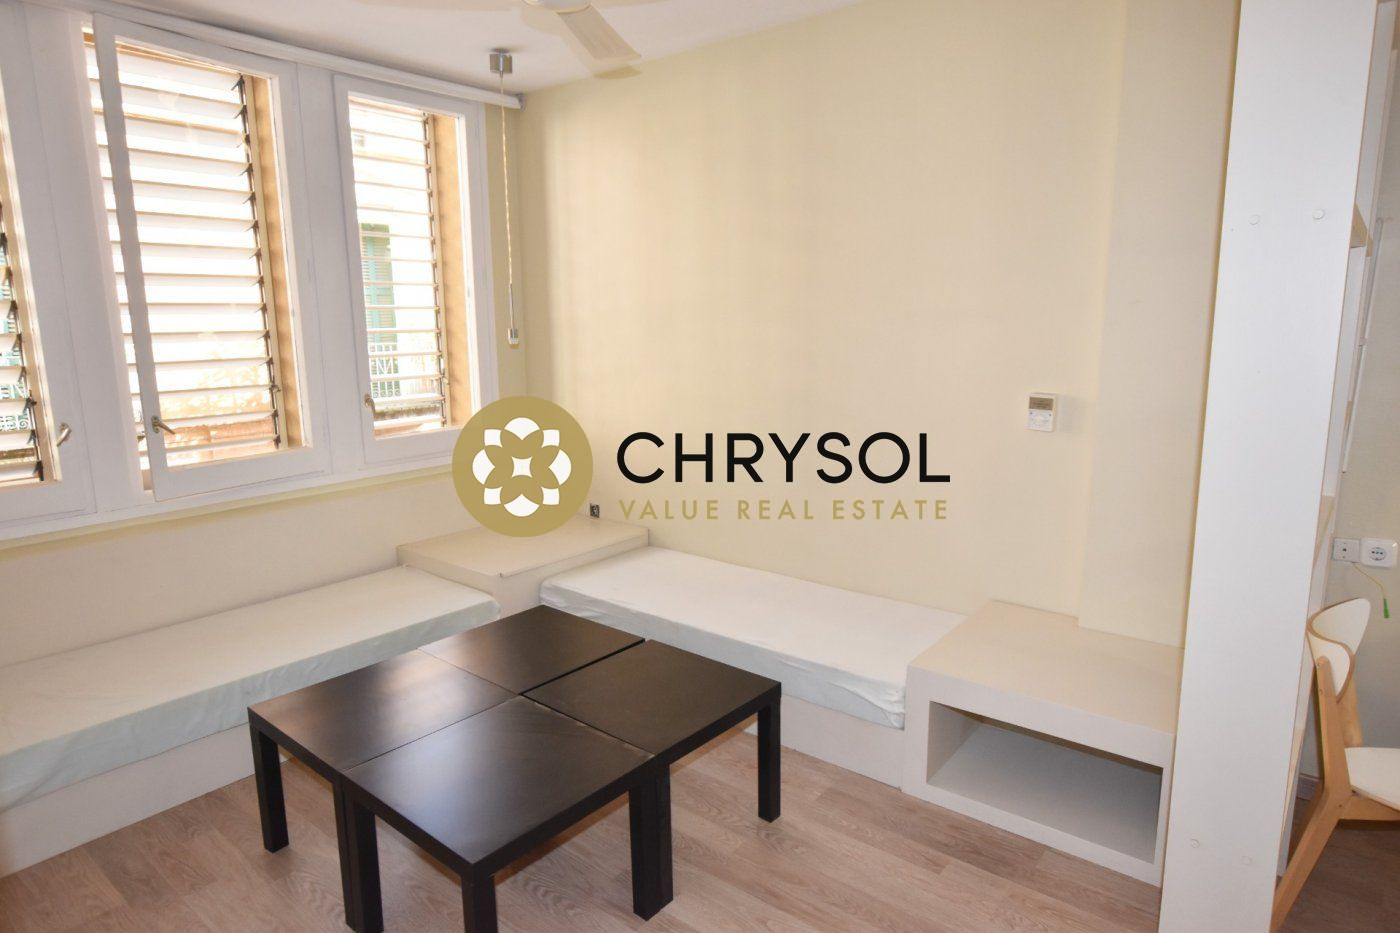 Photogallery - 1 - Chrysol Value